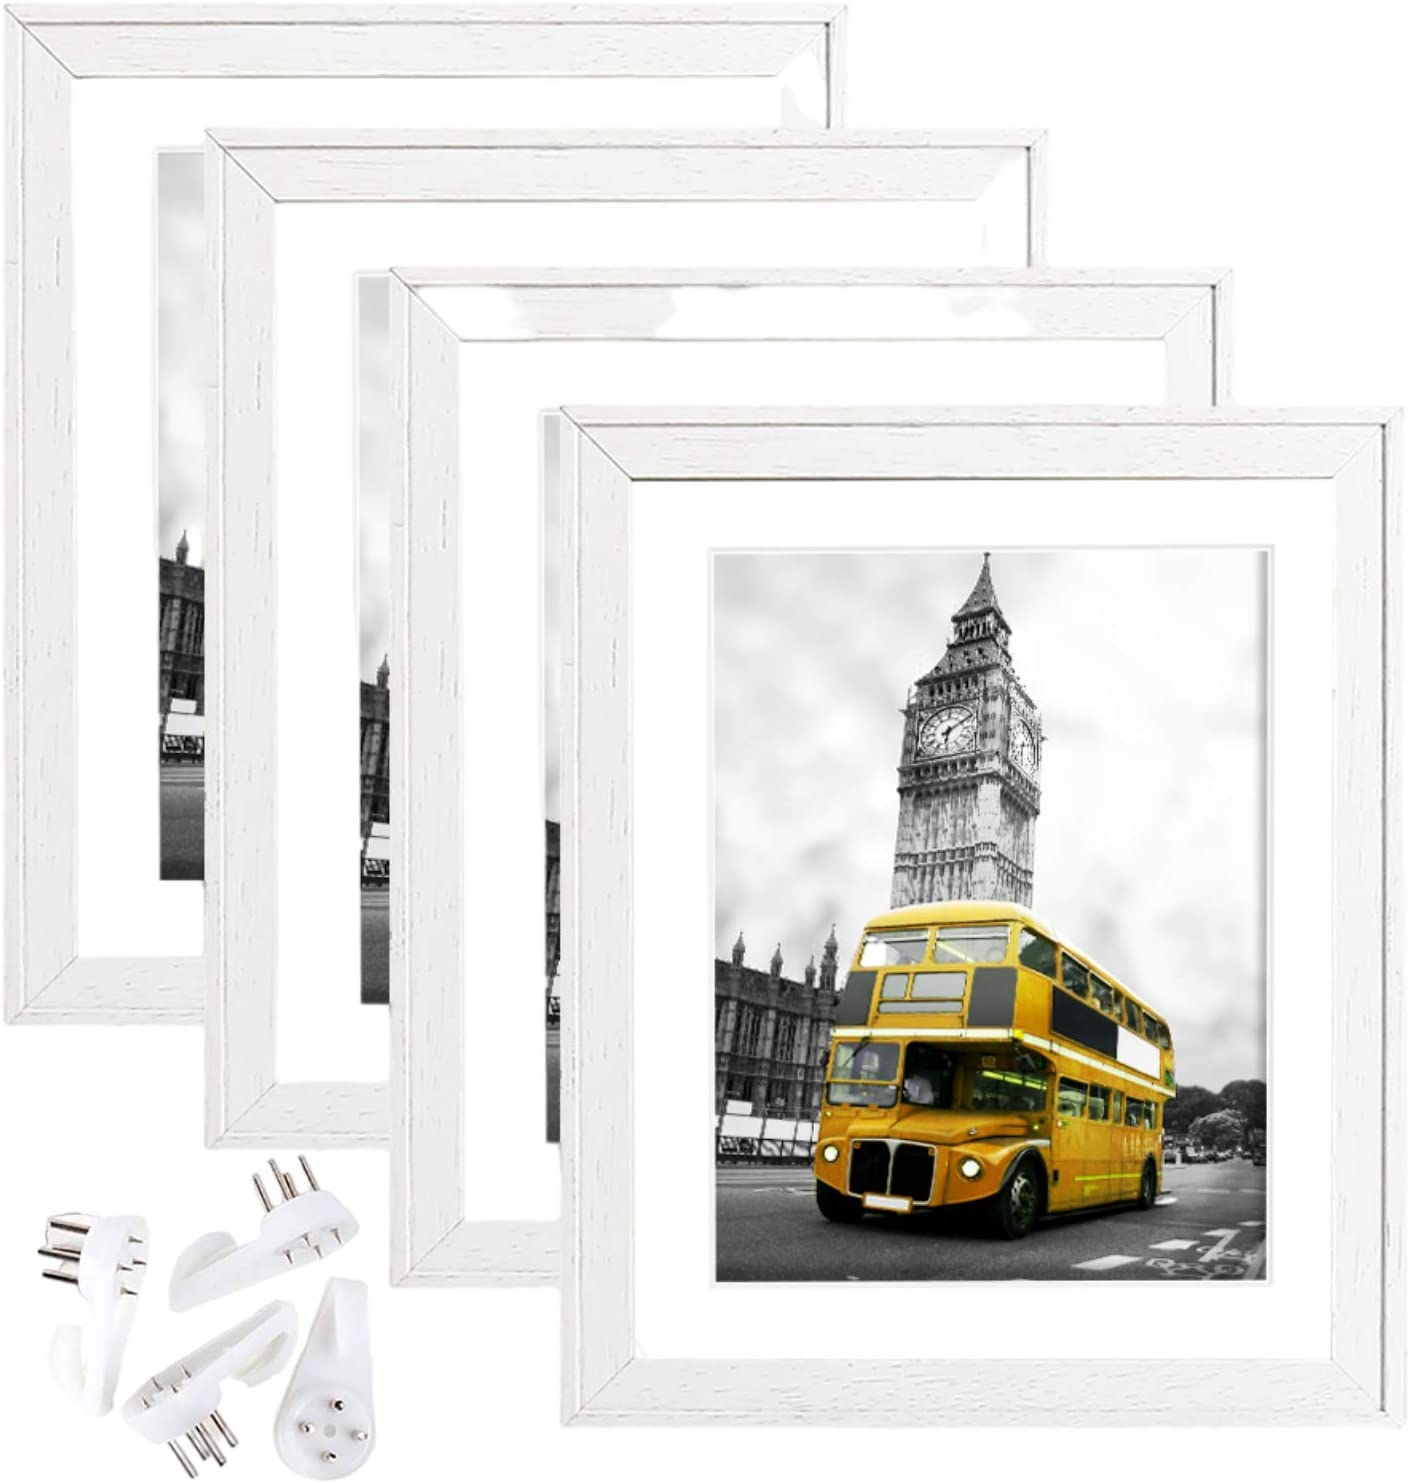 8x10 Picture Frames Set of 4, Photo Frames 8X10 Made of Solid Wood, White picture frames Without Mat, BWPFRAME frames for Multi Photo Frames Collage Wall Display